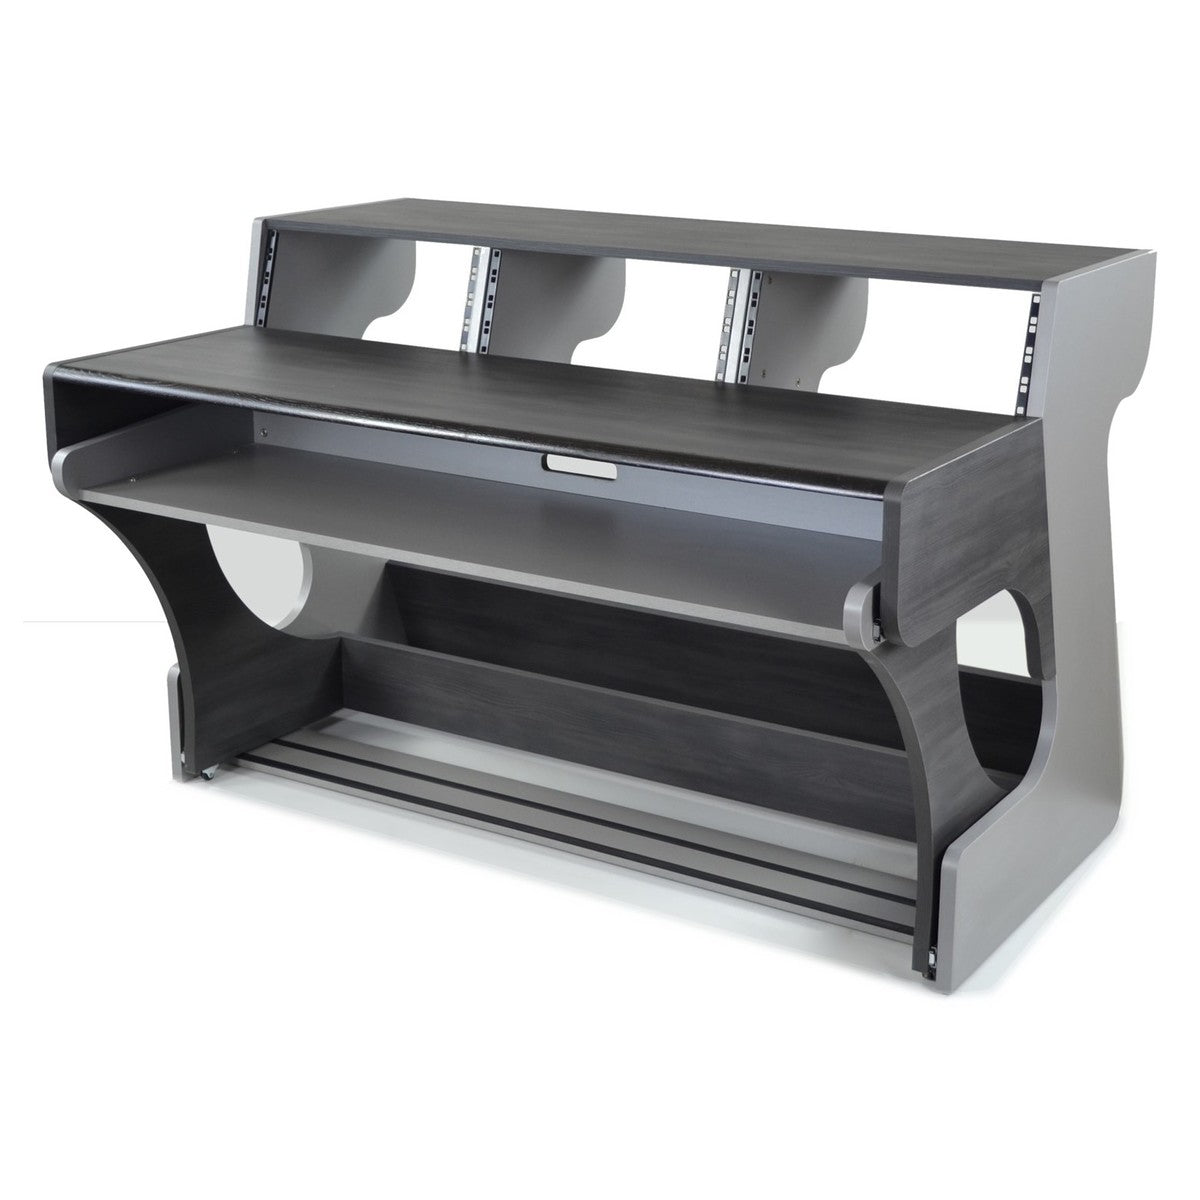 Zaor Miza 88 XL Studio Desk